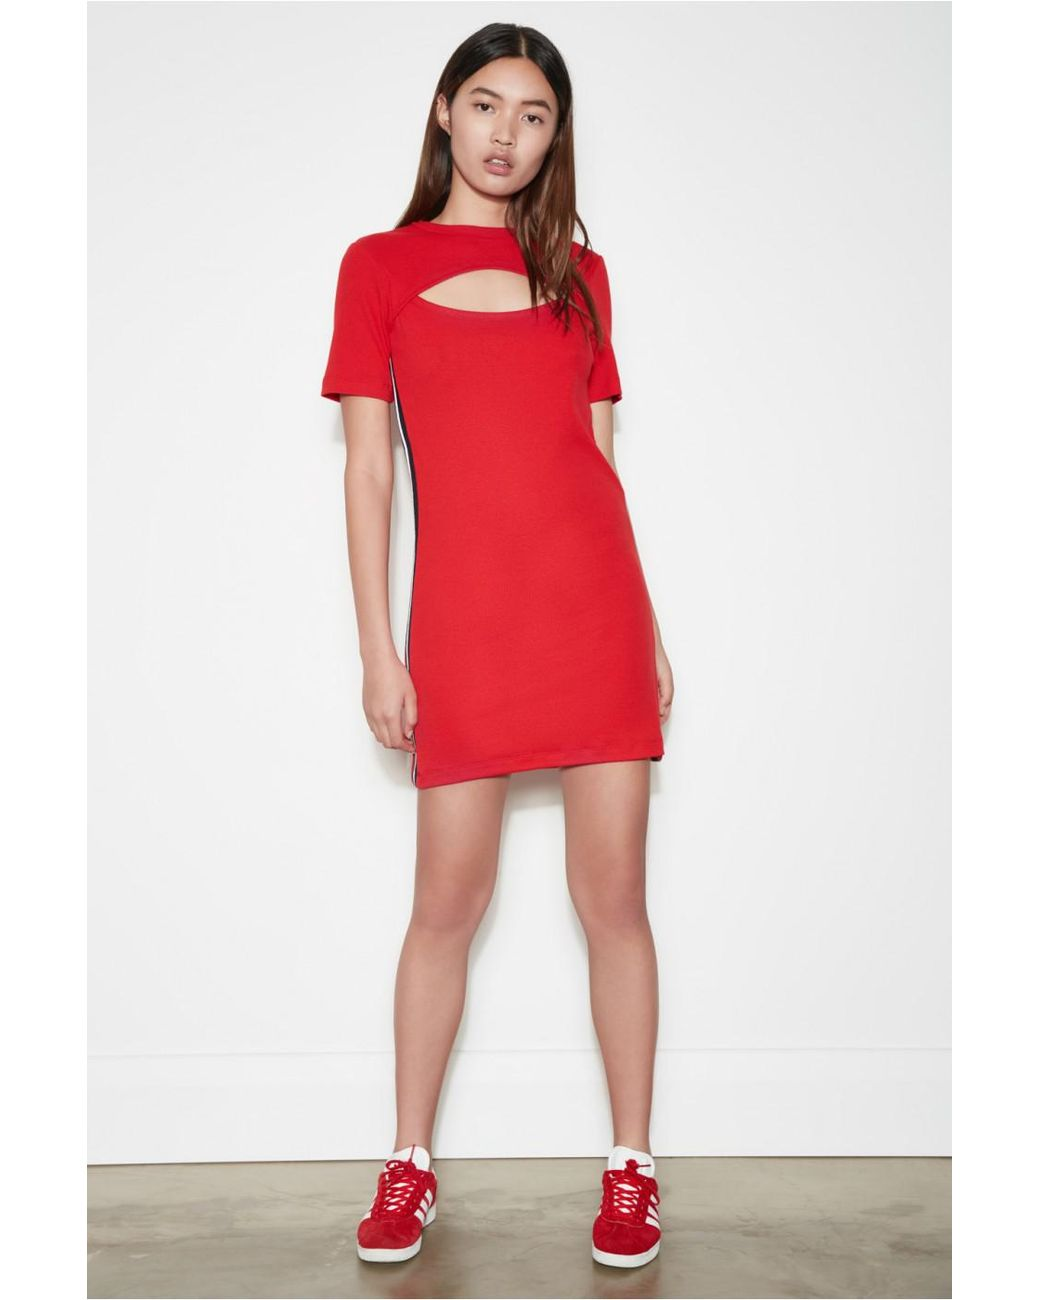 6047920e5b The Fifth Label Wayfarer Dress in Red - Save 67% - Lyst